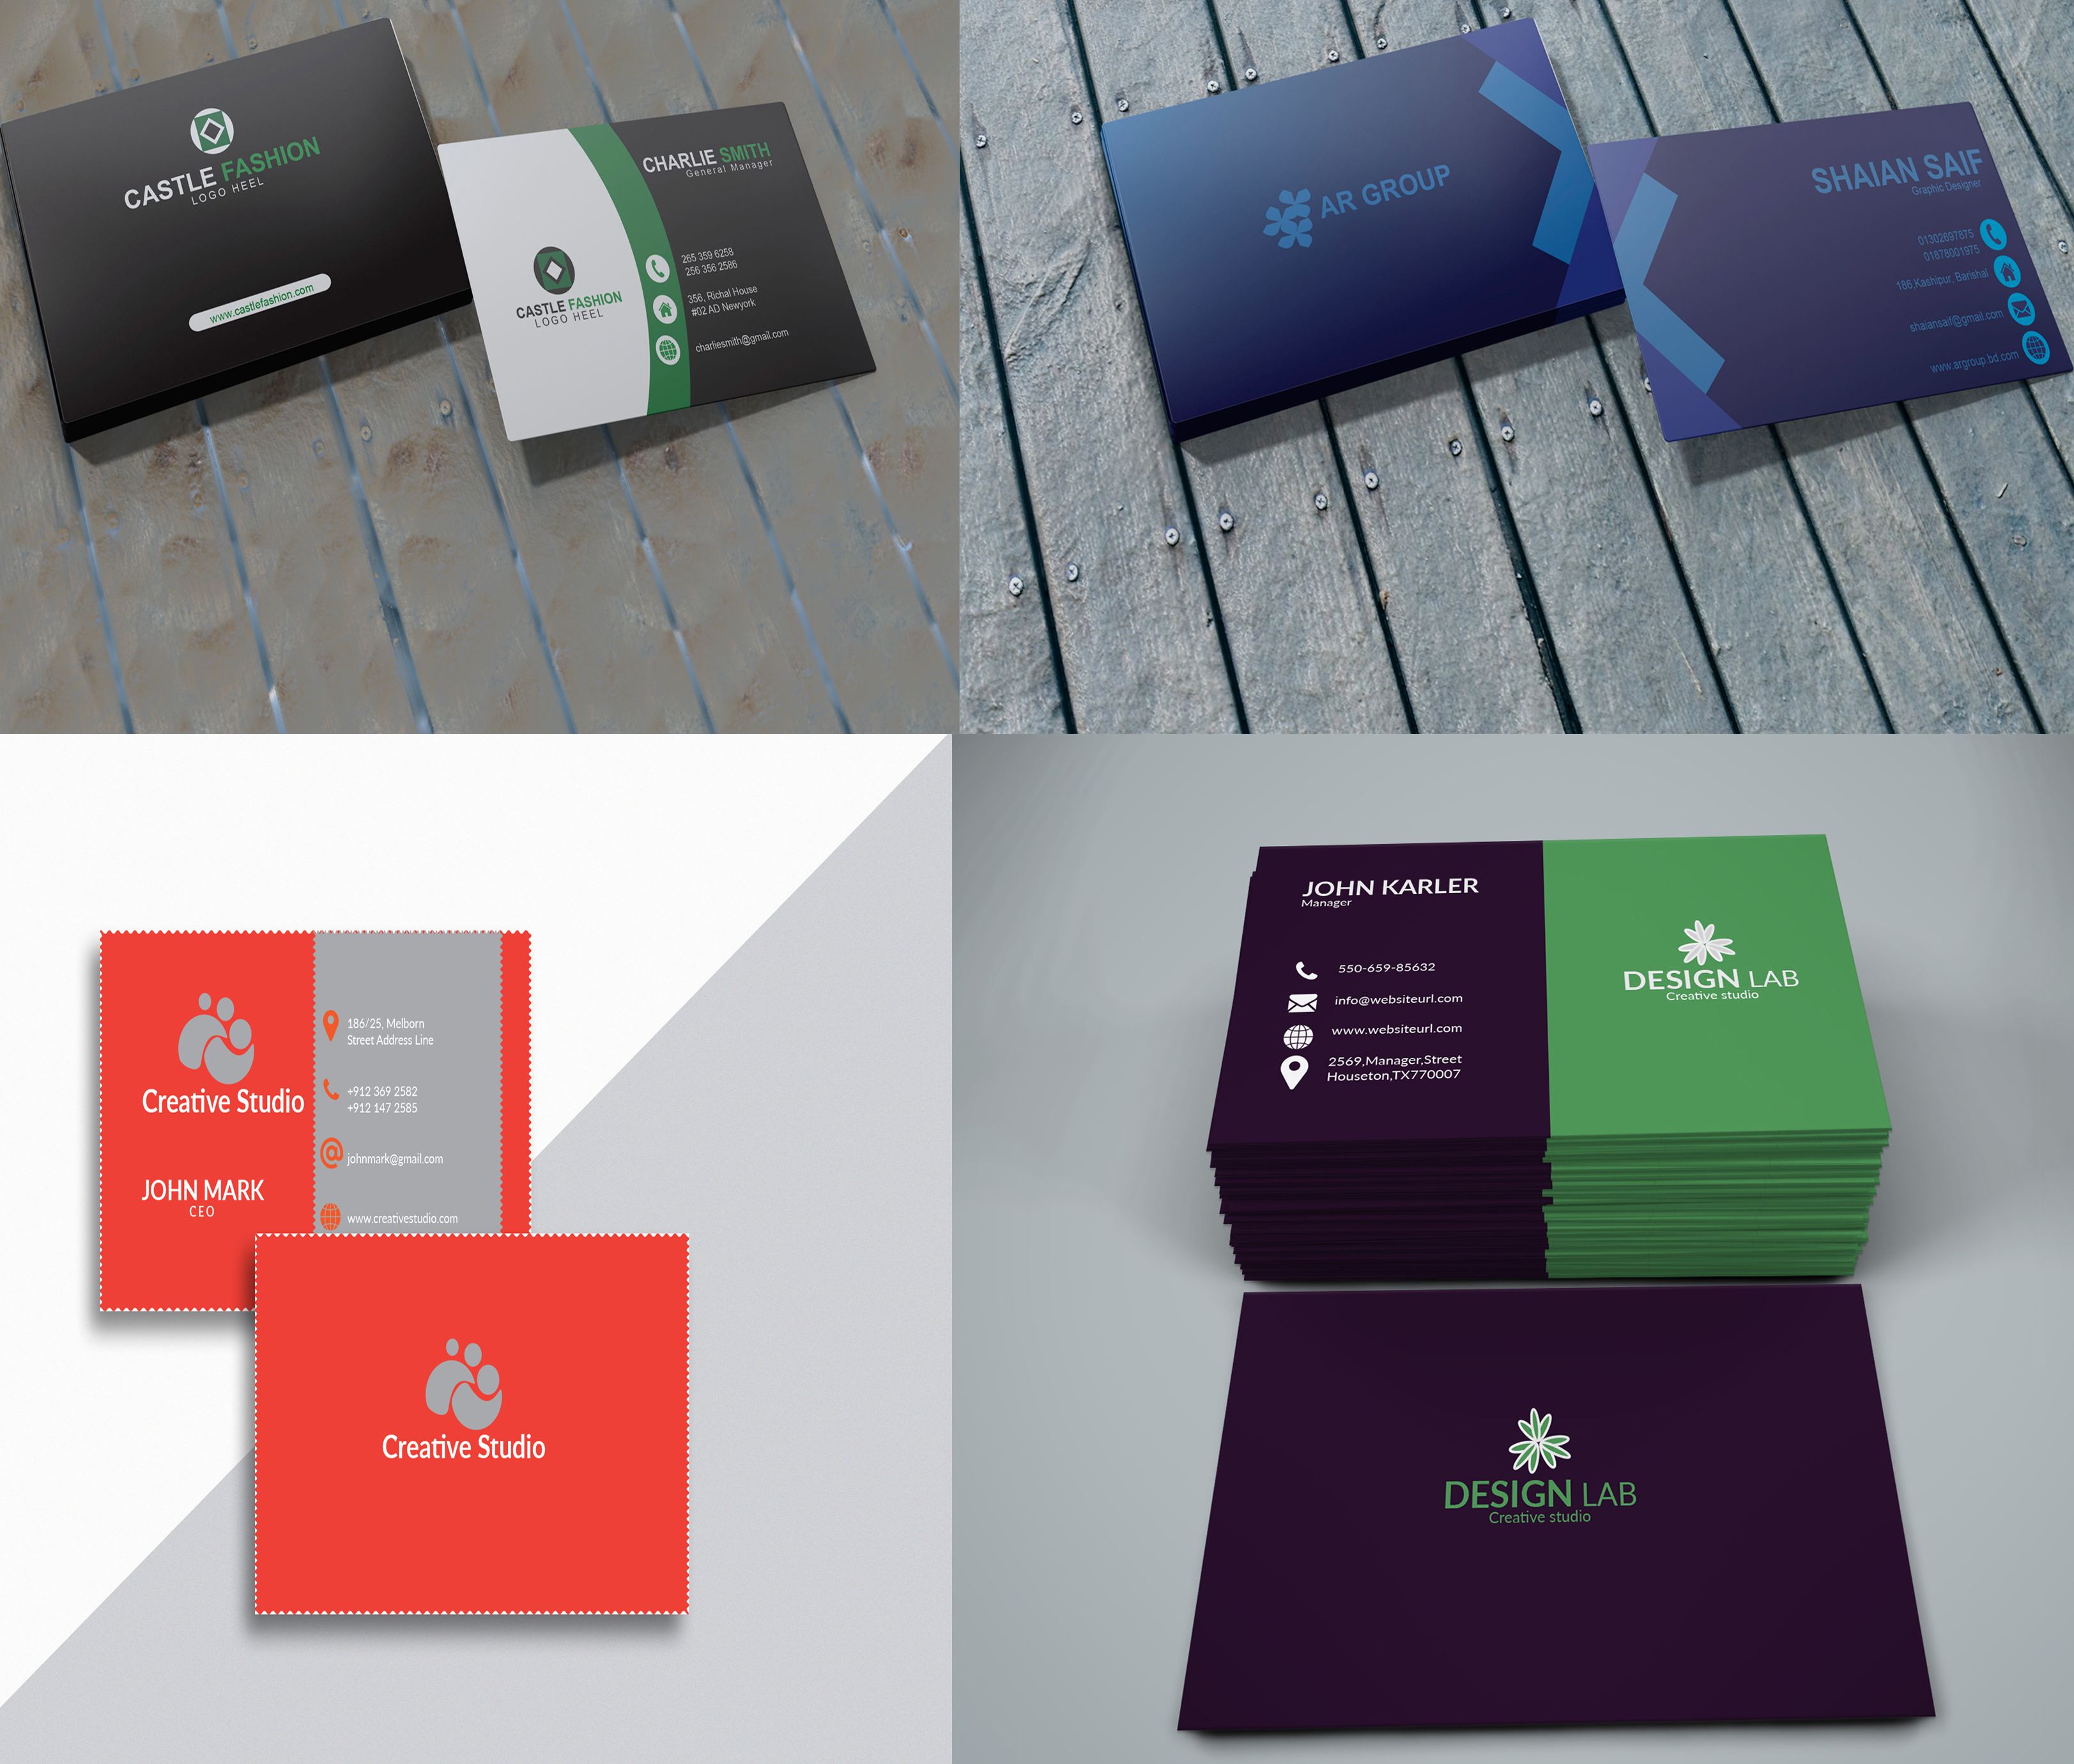 I will provide unique business card design